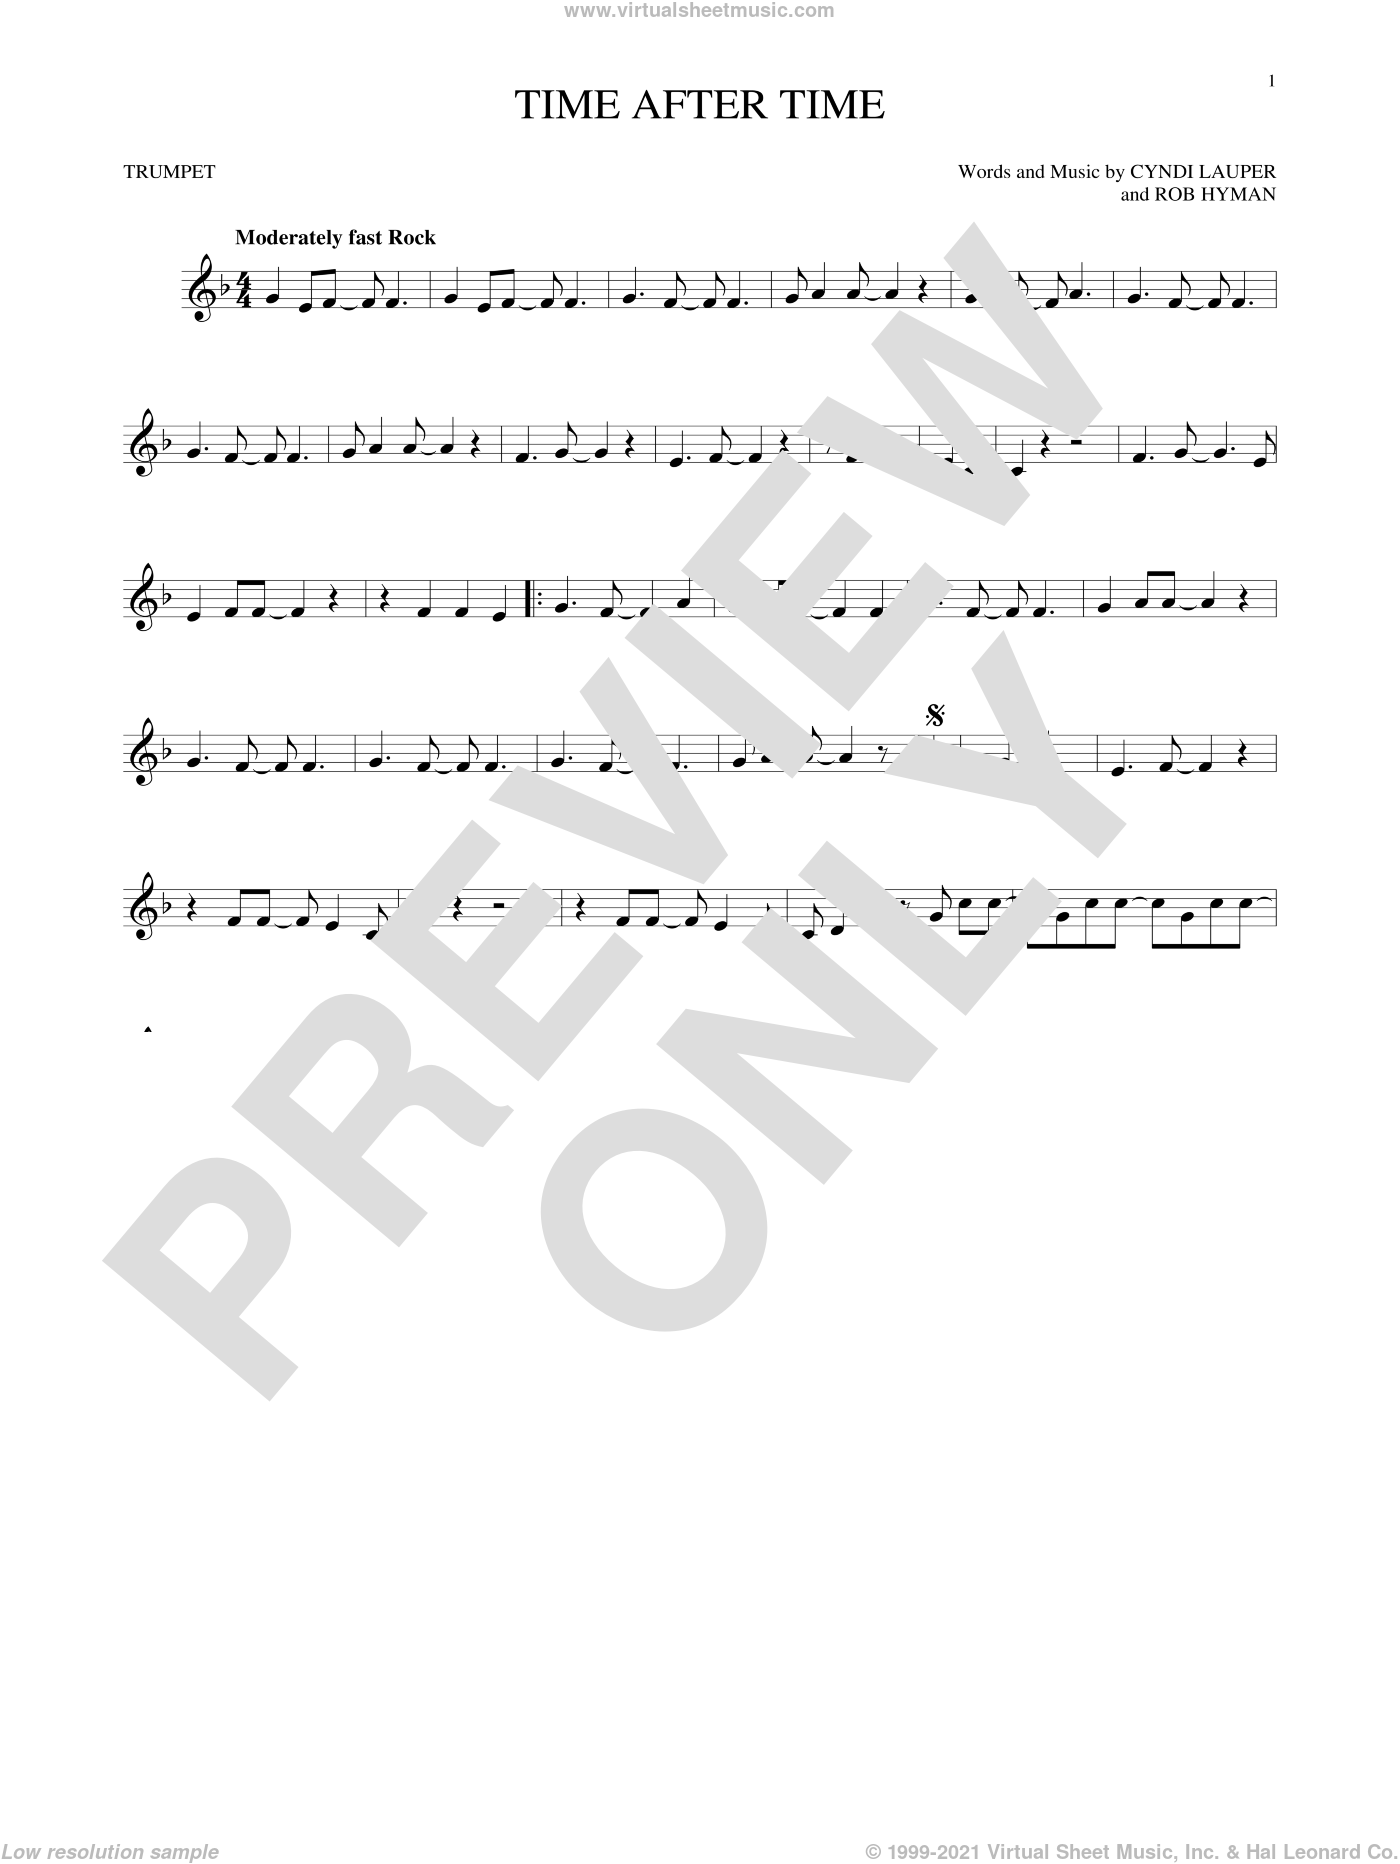 Time After Time sheet music for trumpet solo by Cyndi Lauper, Inoj, Javier Colon and Rob Hyman, intermediate skill level